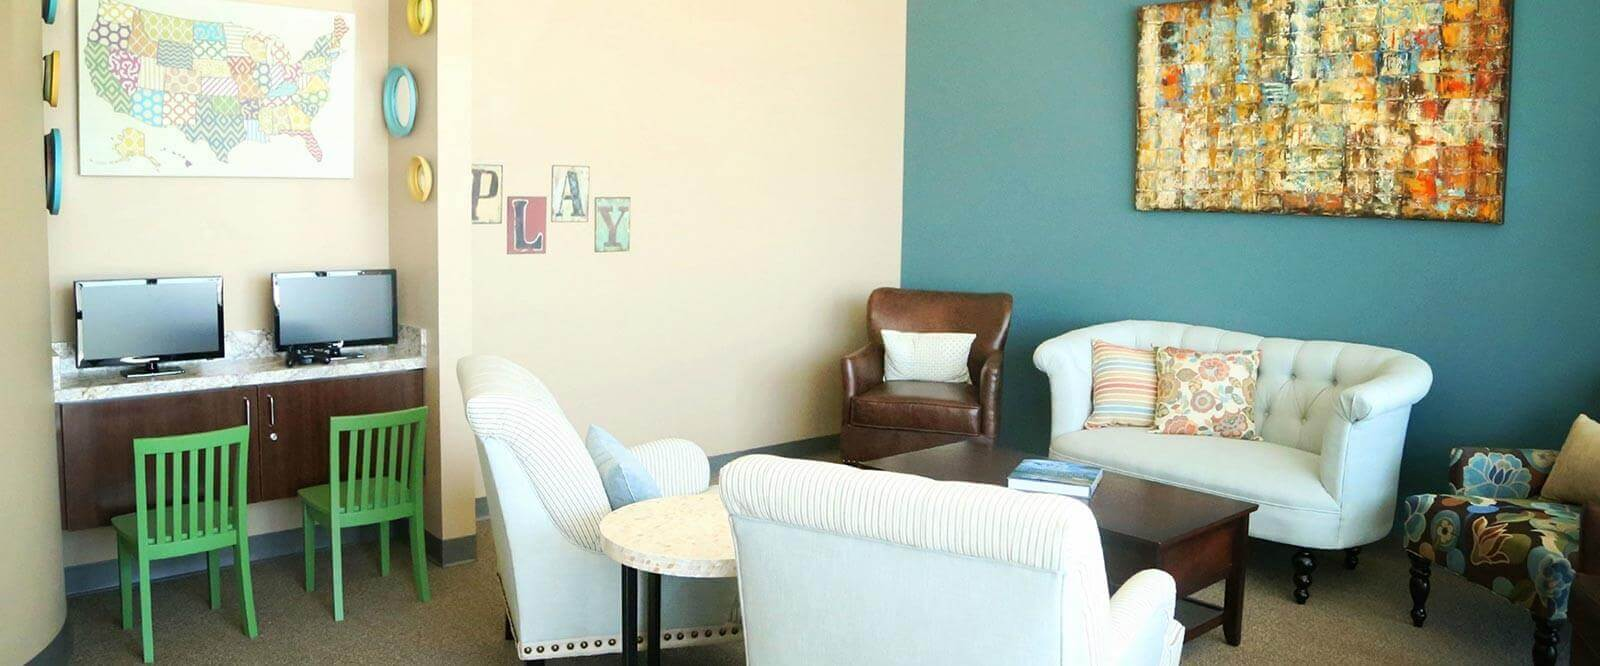 Waiting Room - Overland Park Family Dental